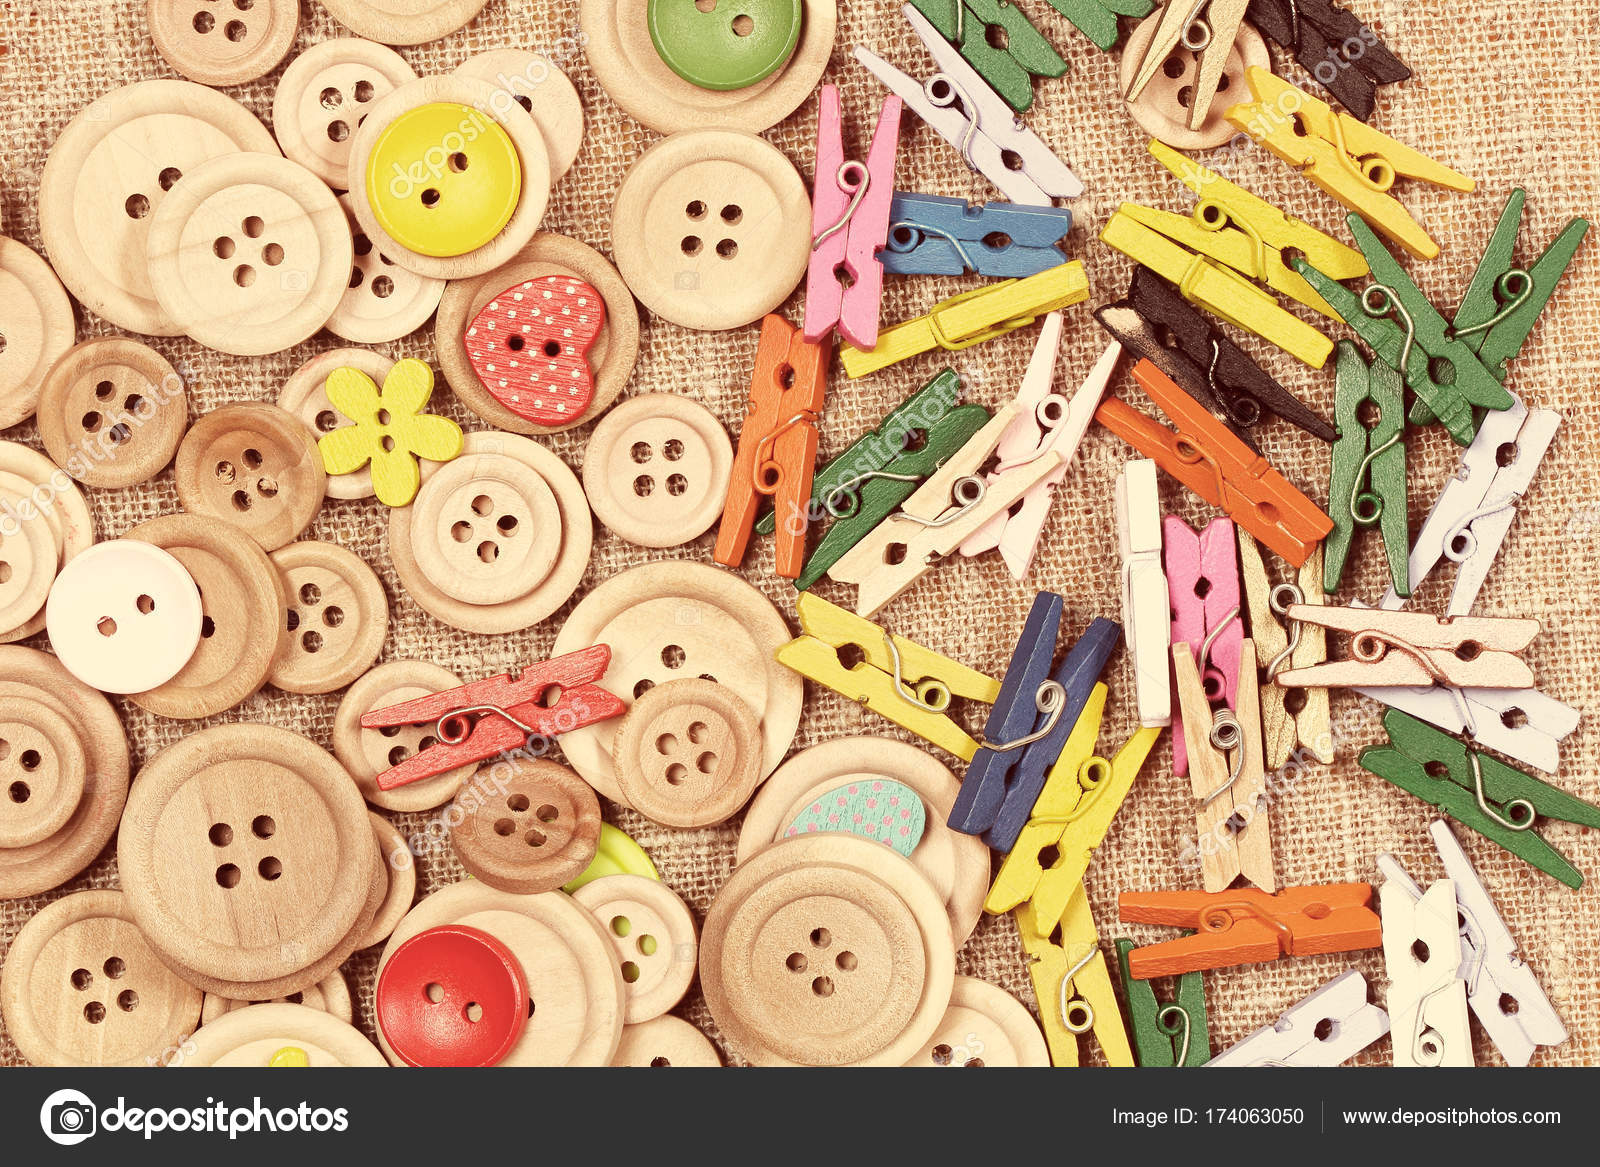 How to play with clothespins and buttons 39